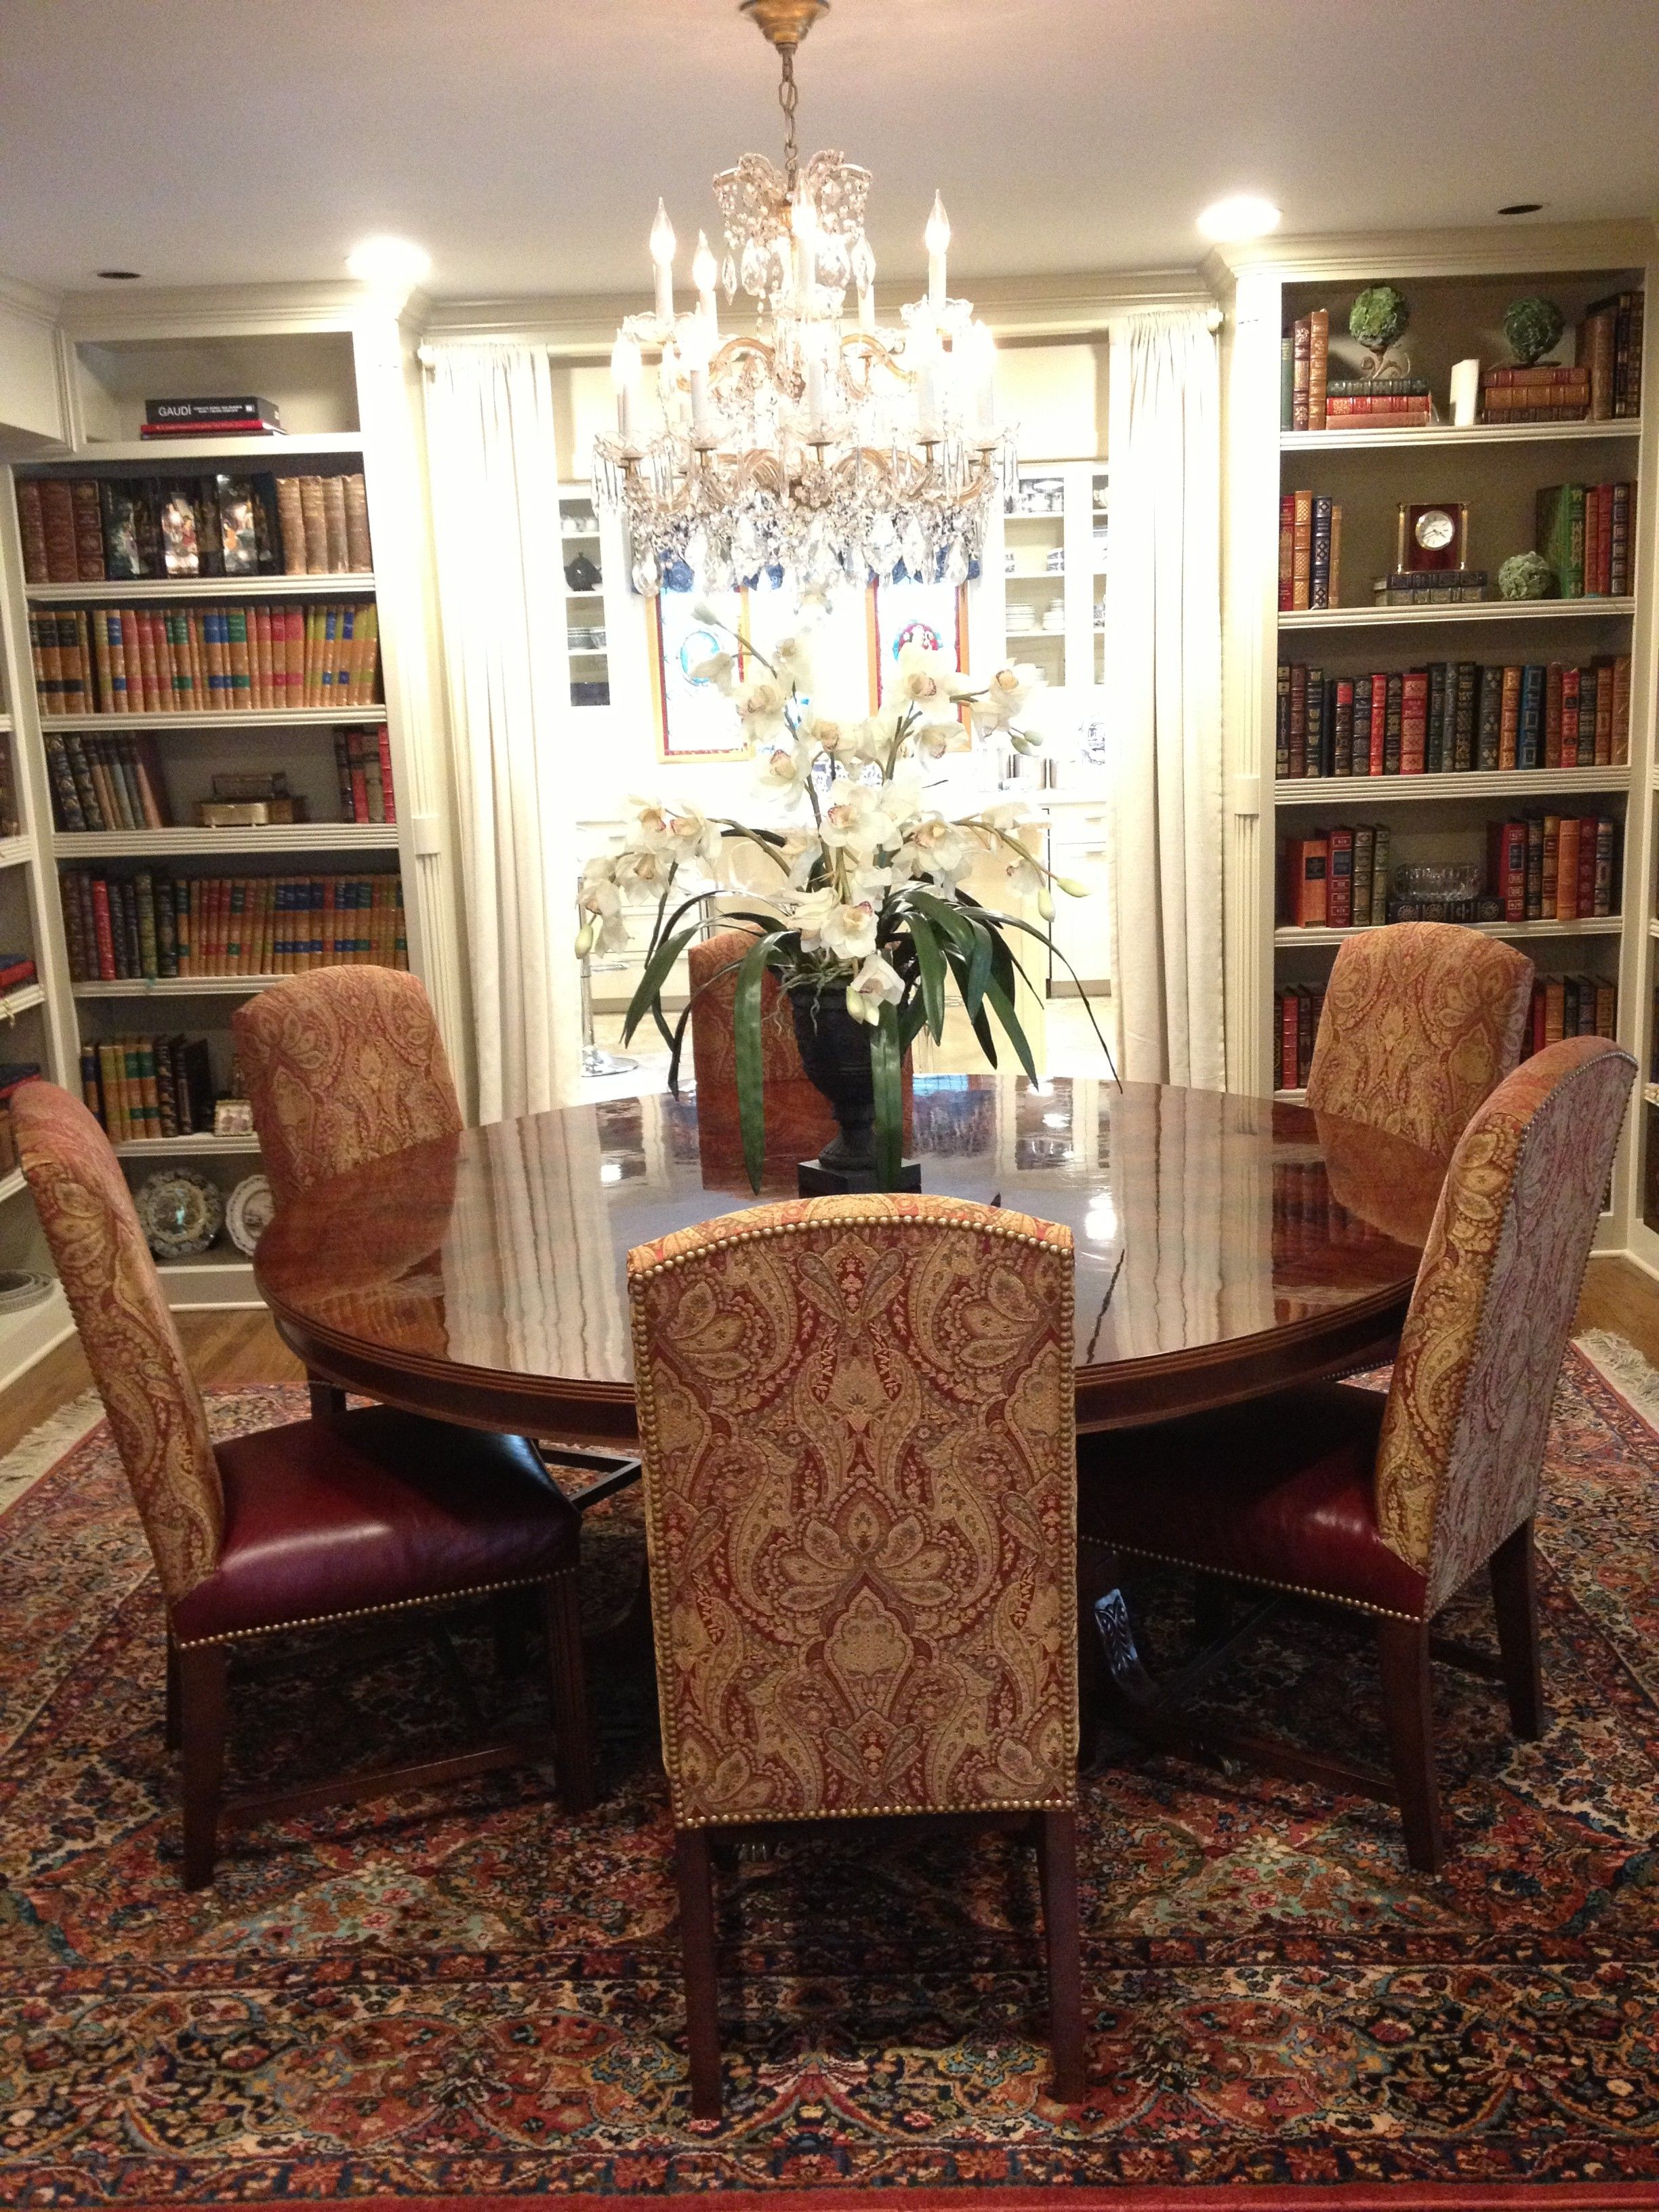 Dining Room Library Ideas: Running With The Fancy Folk!